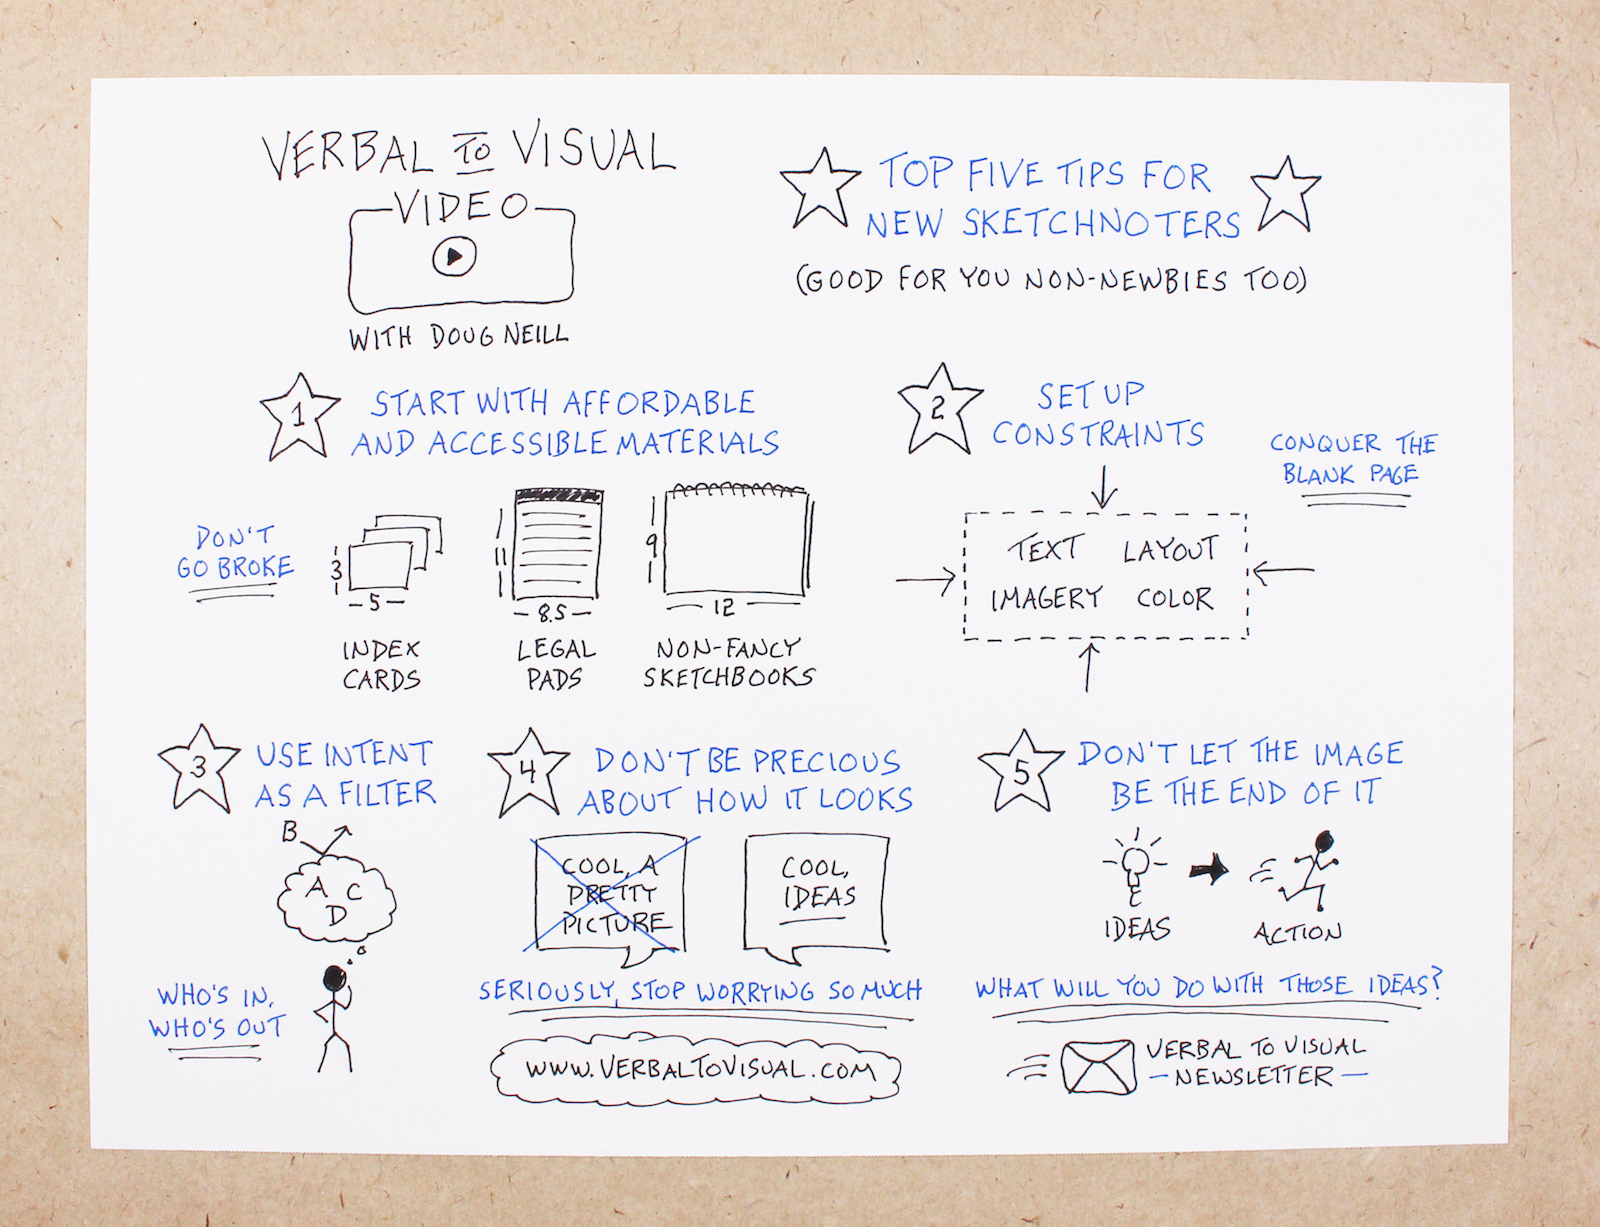 Top Five Tips For New Sketchnoters (VTV Episode #11) - Verbal To Visual - Doug Neill - visual note-taking, sketchnoting, doodling, materials, constraints, text, imagery, layout, color, intent, filter, ideas, action